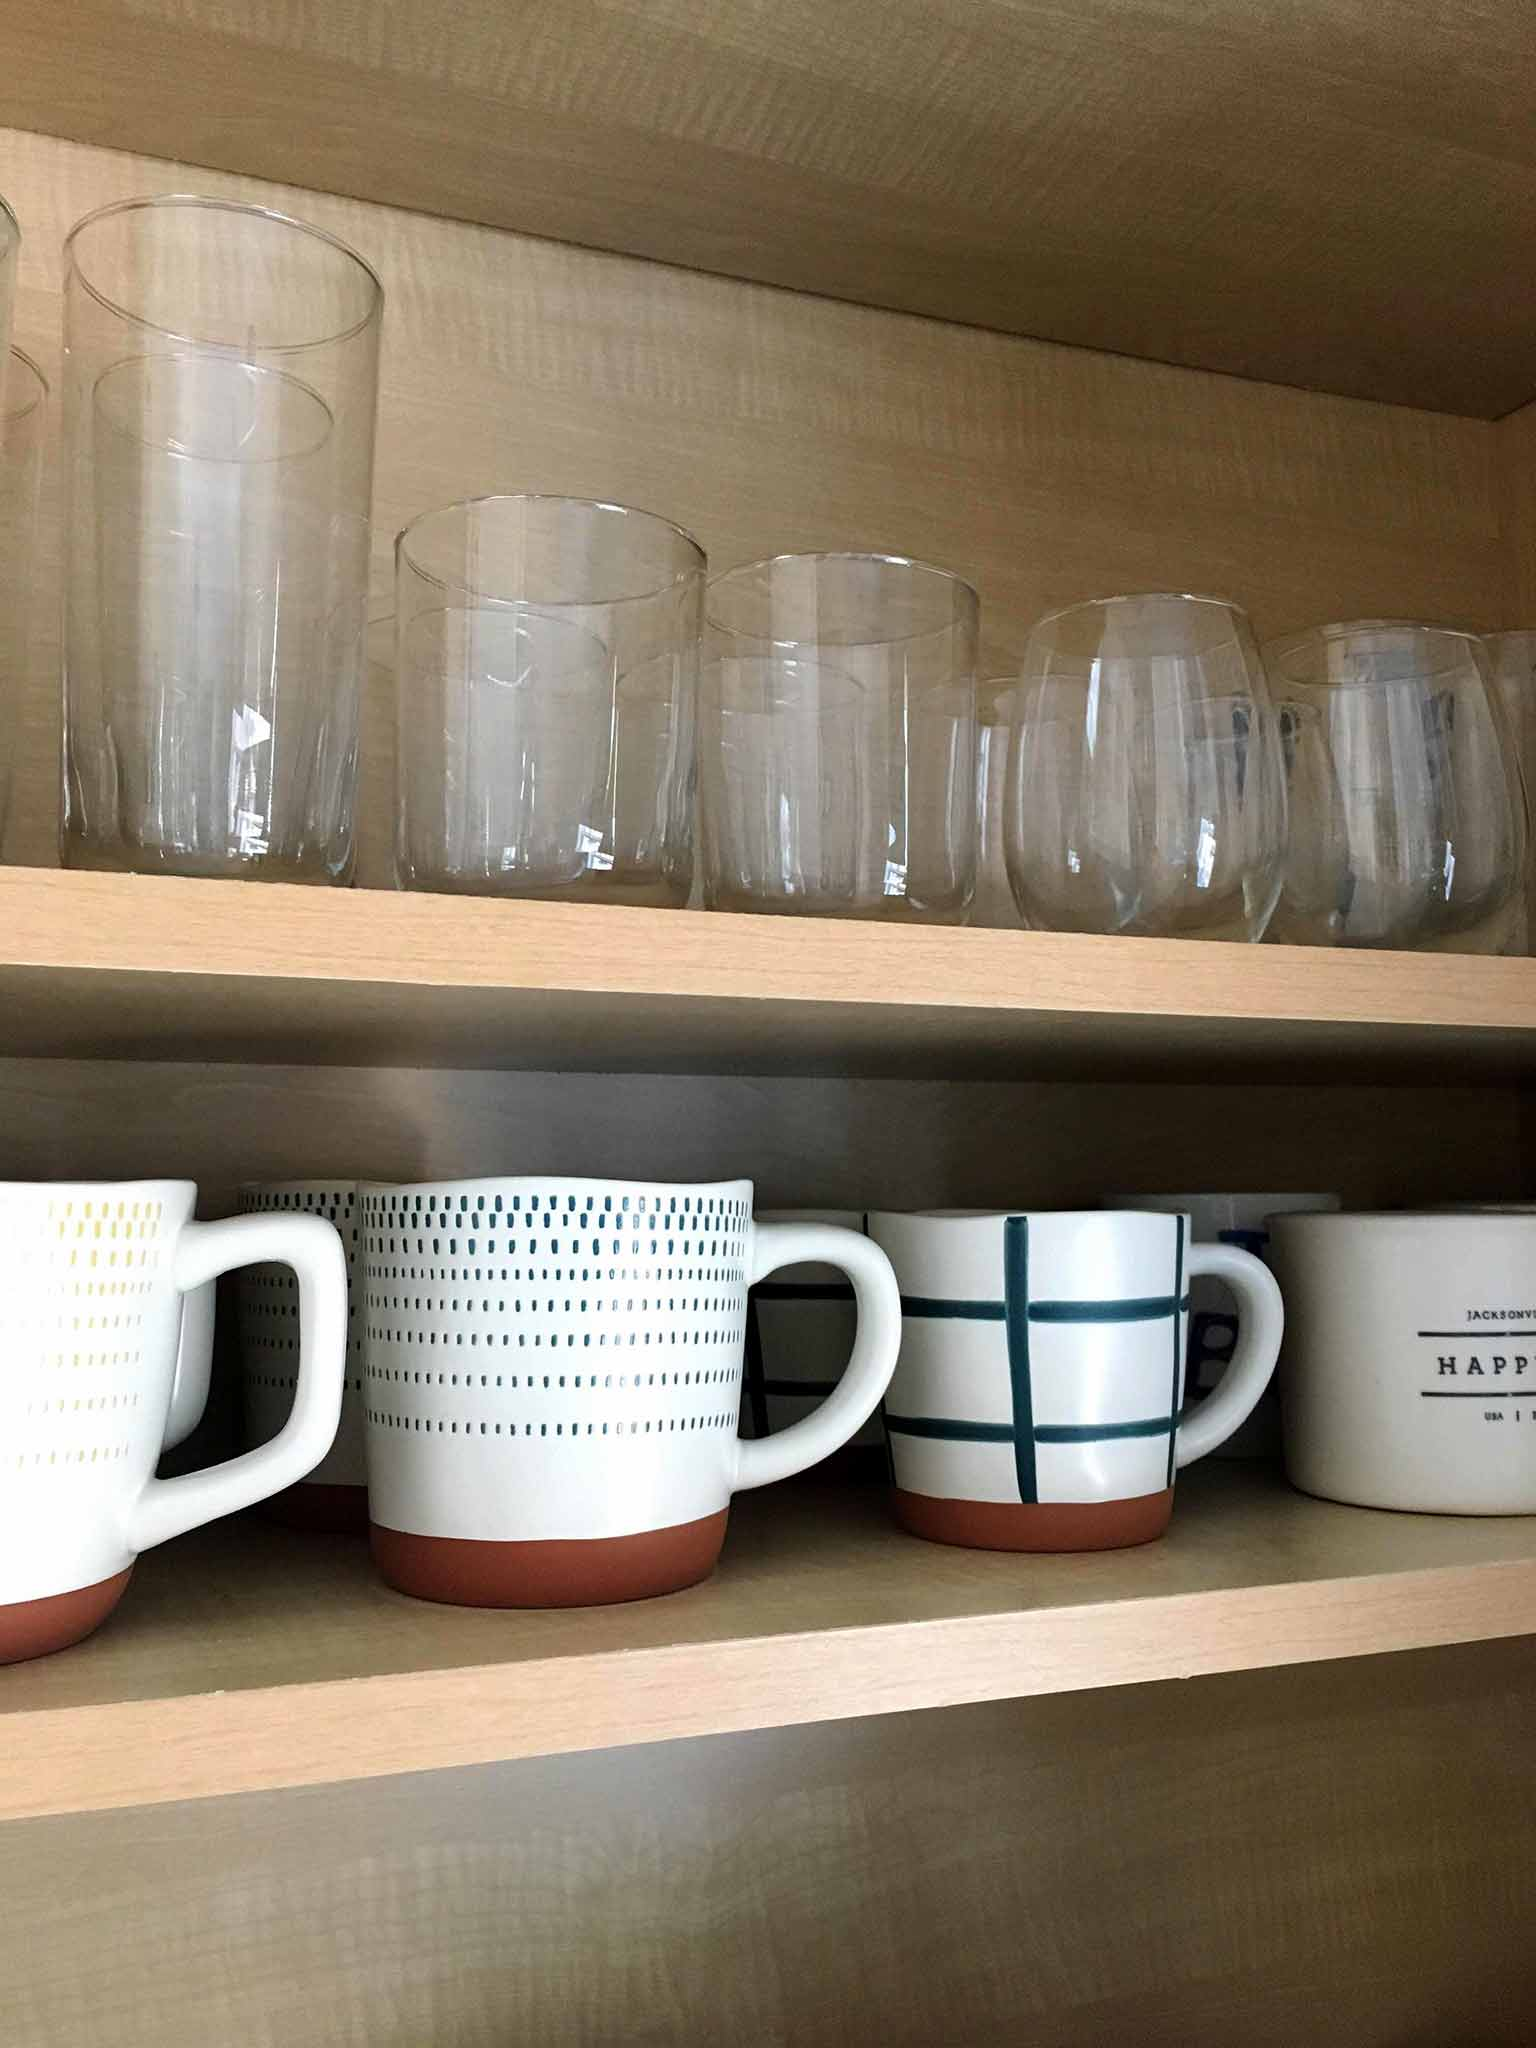 Target Hearth and Hand Stoneware Mugs with Project 62 Glassware - That Homebird Life Blog